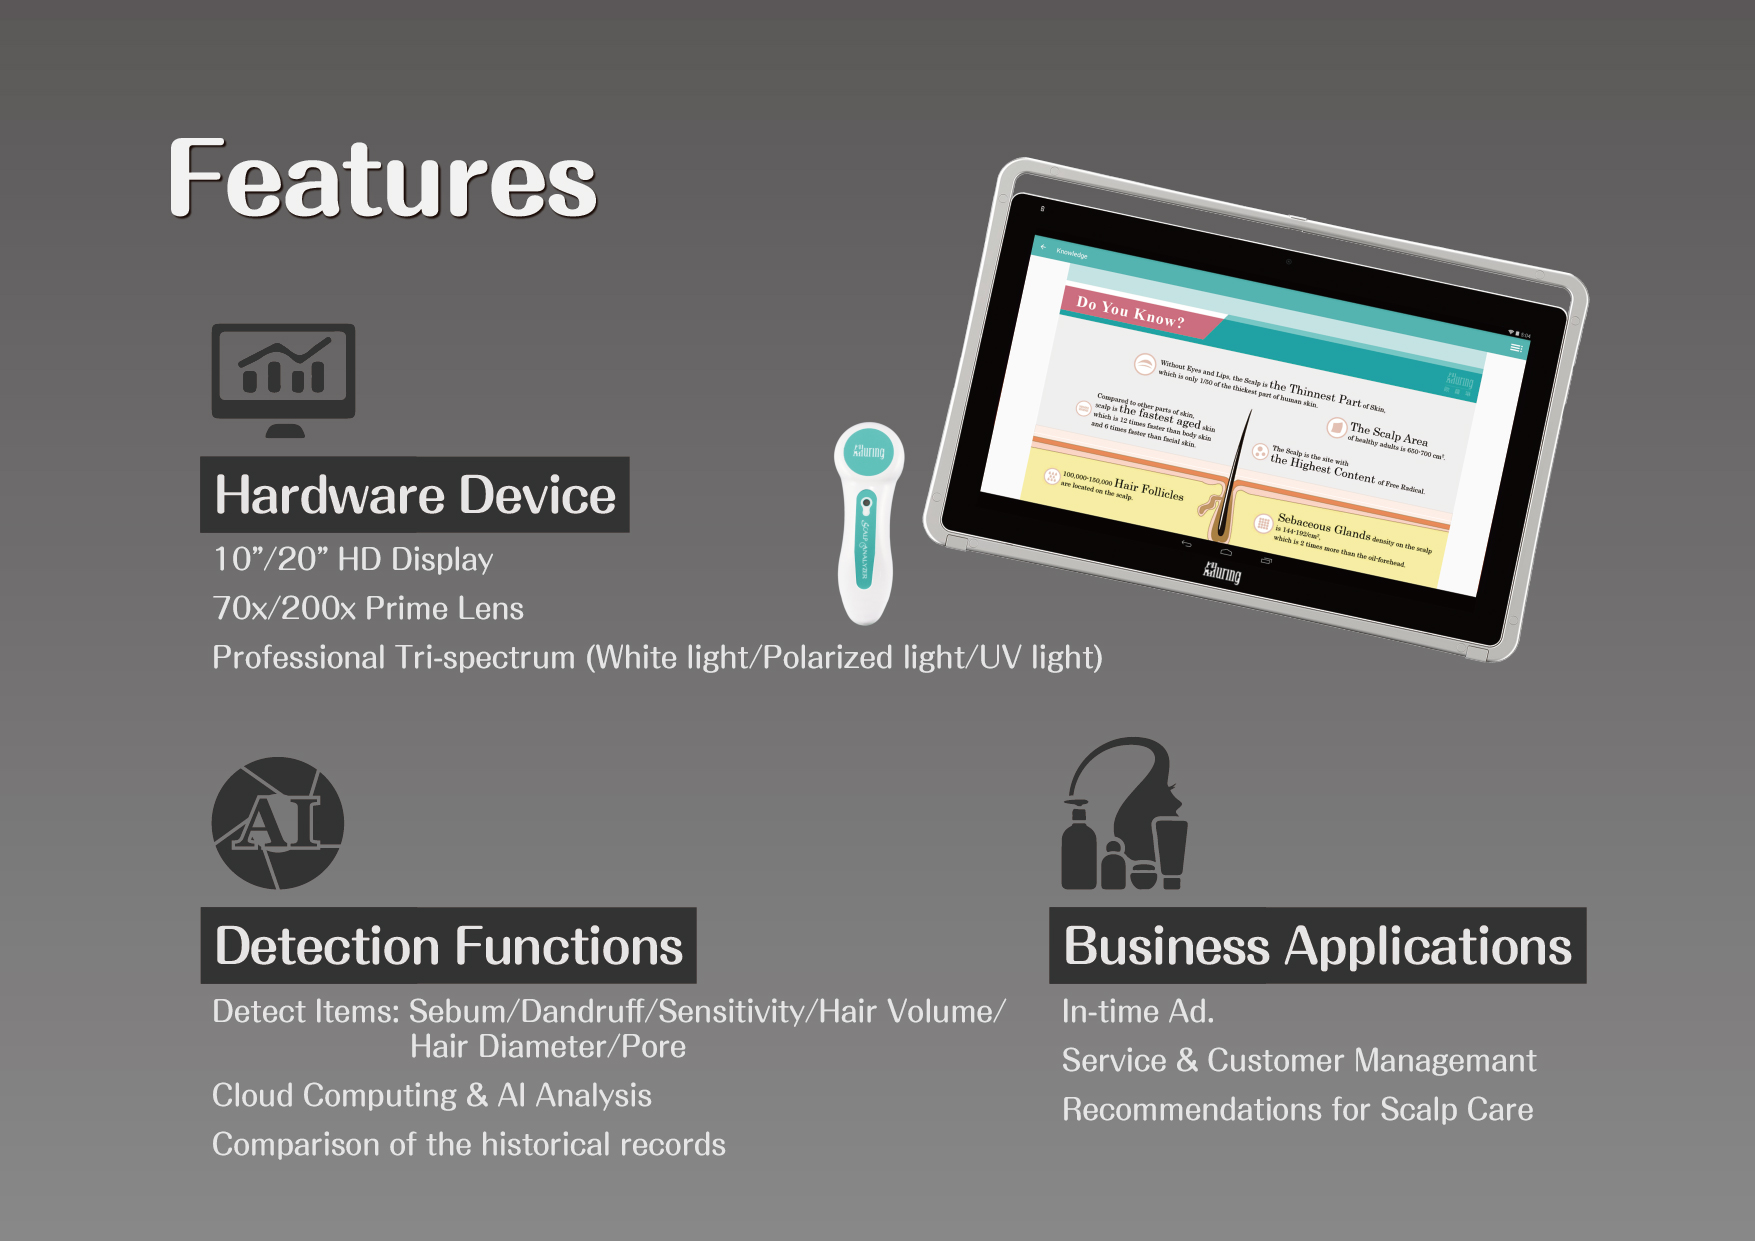 """Features: Hardware Device: 10""""/20"""" HD Display, 70x/200x Prime Lens, Professional Tri-spectrum (White light/Polarized light/UV light) Detection Functions: Detect items includes Sebum, Dandruff, Sensitivity, Hair Volume, Hair Diameter, and Pore.  Cloud Computing & AI Analysis application.  Comparison of the historical records. Business Applications: In-time Ad., Service & Customer Managemant, Recommendations for Scalp Care."""